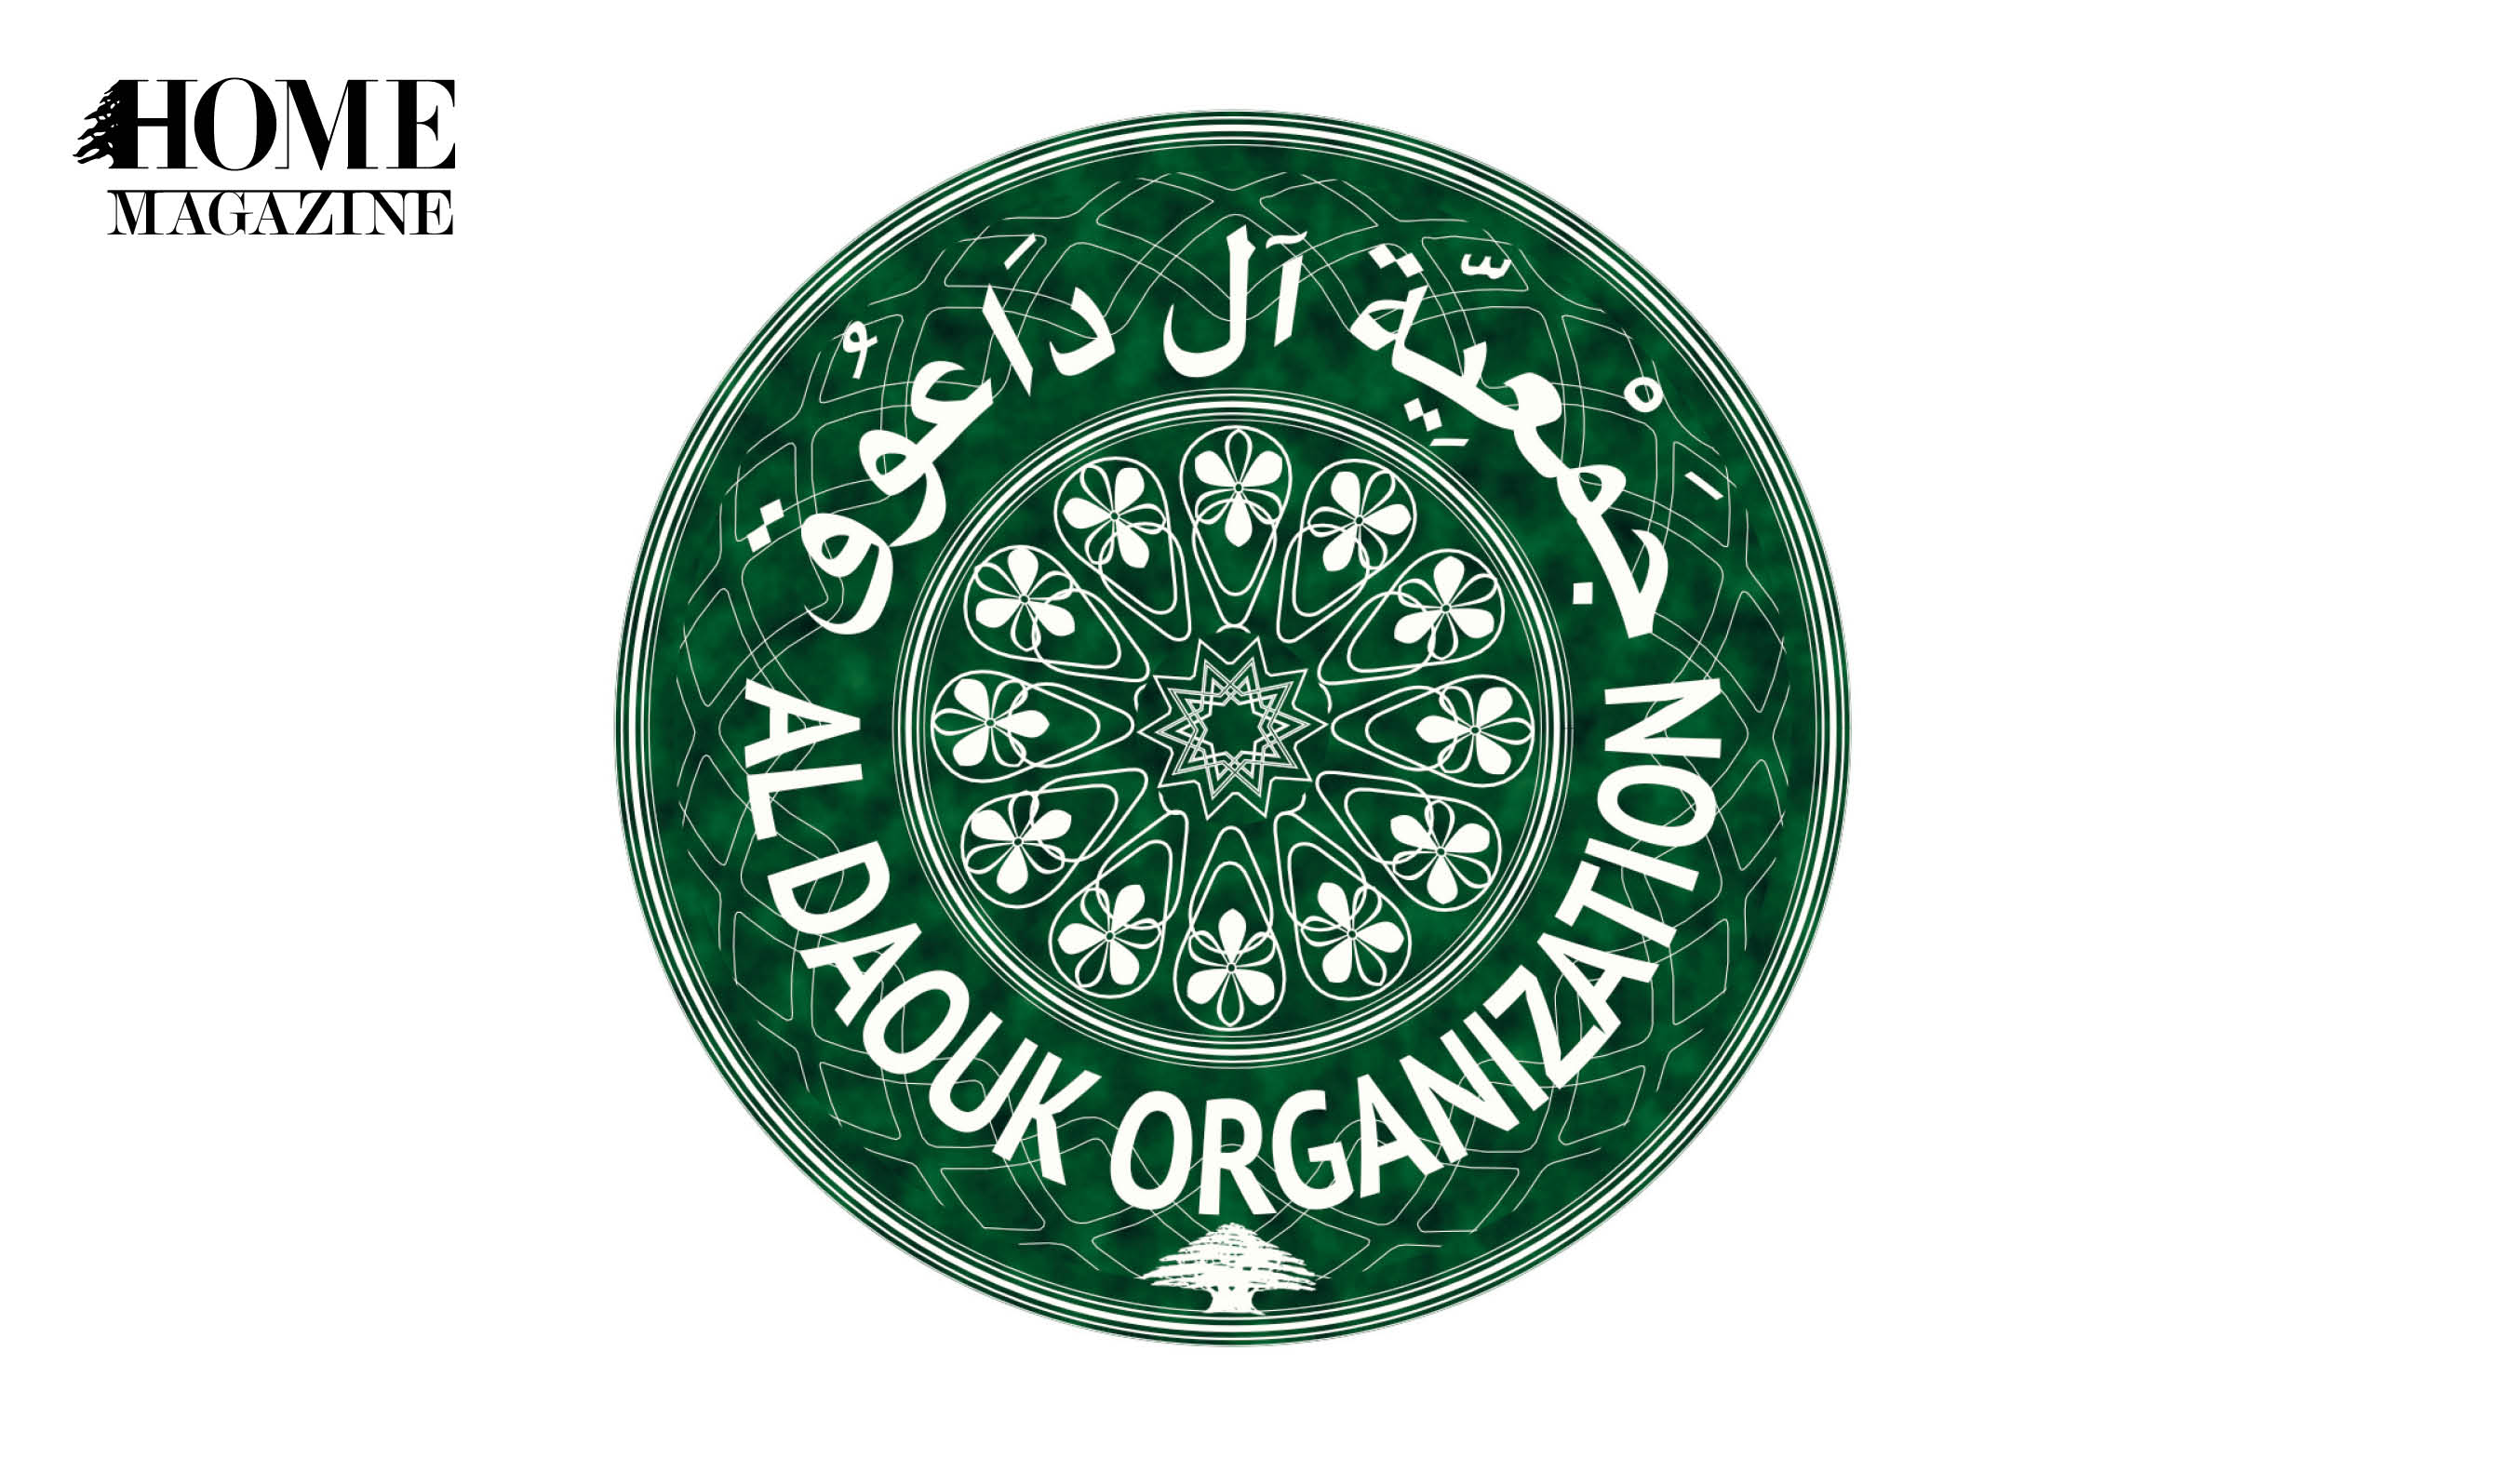 The Daouks: Leaders in Lebanon's Industrial, Commercial, Political, Educational and Social Development